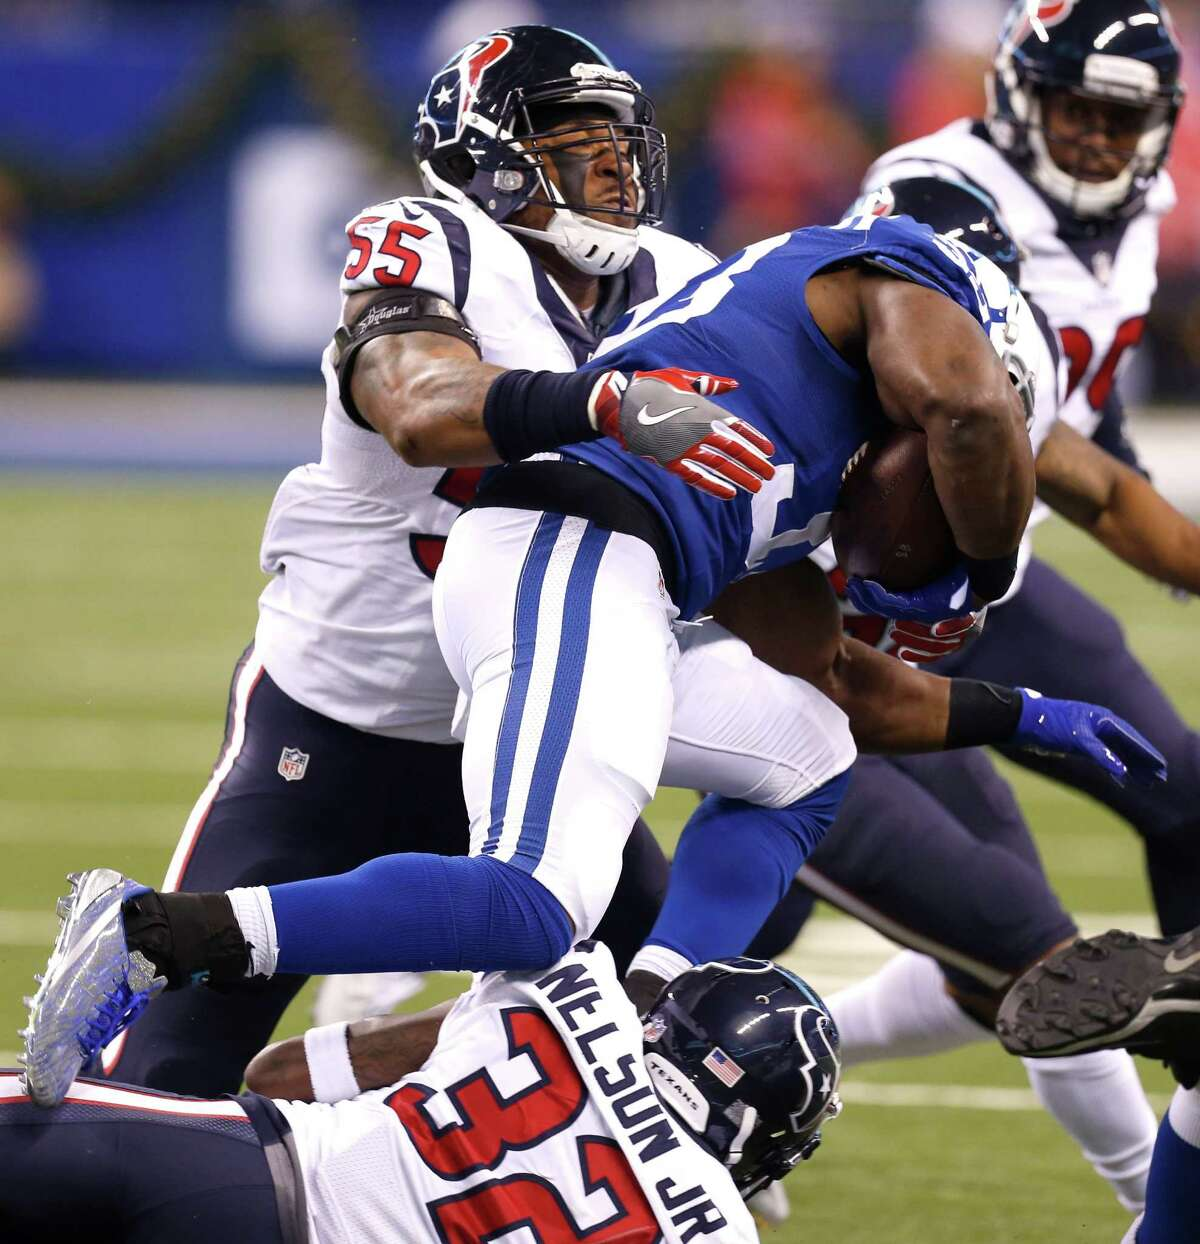 Houston Texans inside linebacker Benardrick McKinney (55) and defensive back Robert Nelson (32) tackle Indianapolis Colts running back Robert Turbin (33) during the second quarter of an NFL football game at Lucas Oil Stadium on Sunday, Dec. 11, 2016, in Indianapolis.